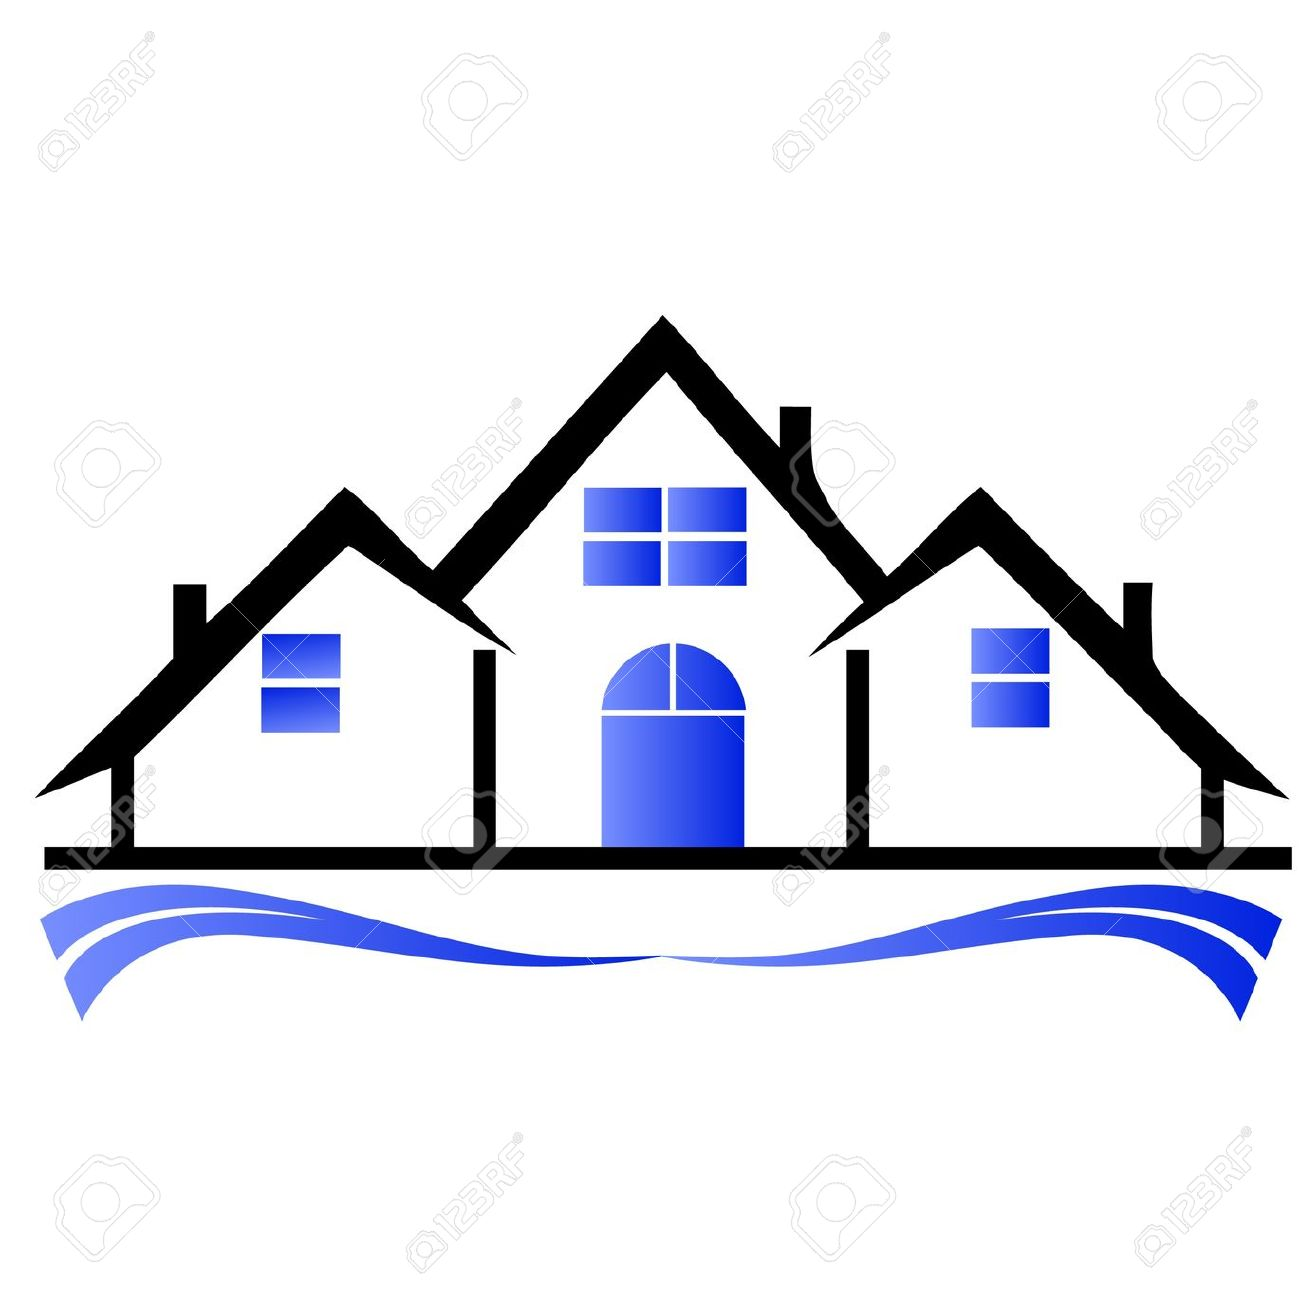 House Construction Clip Art.